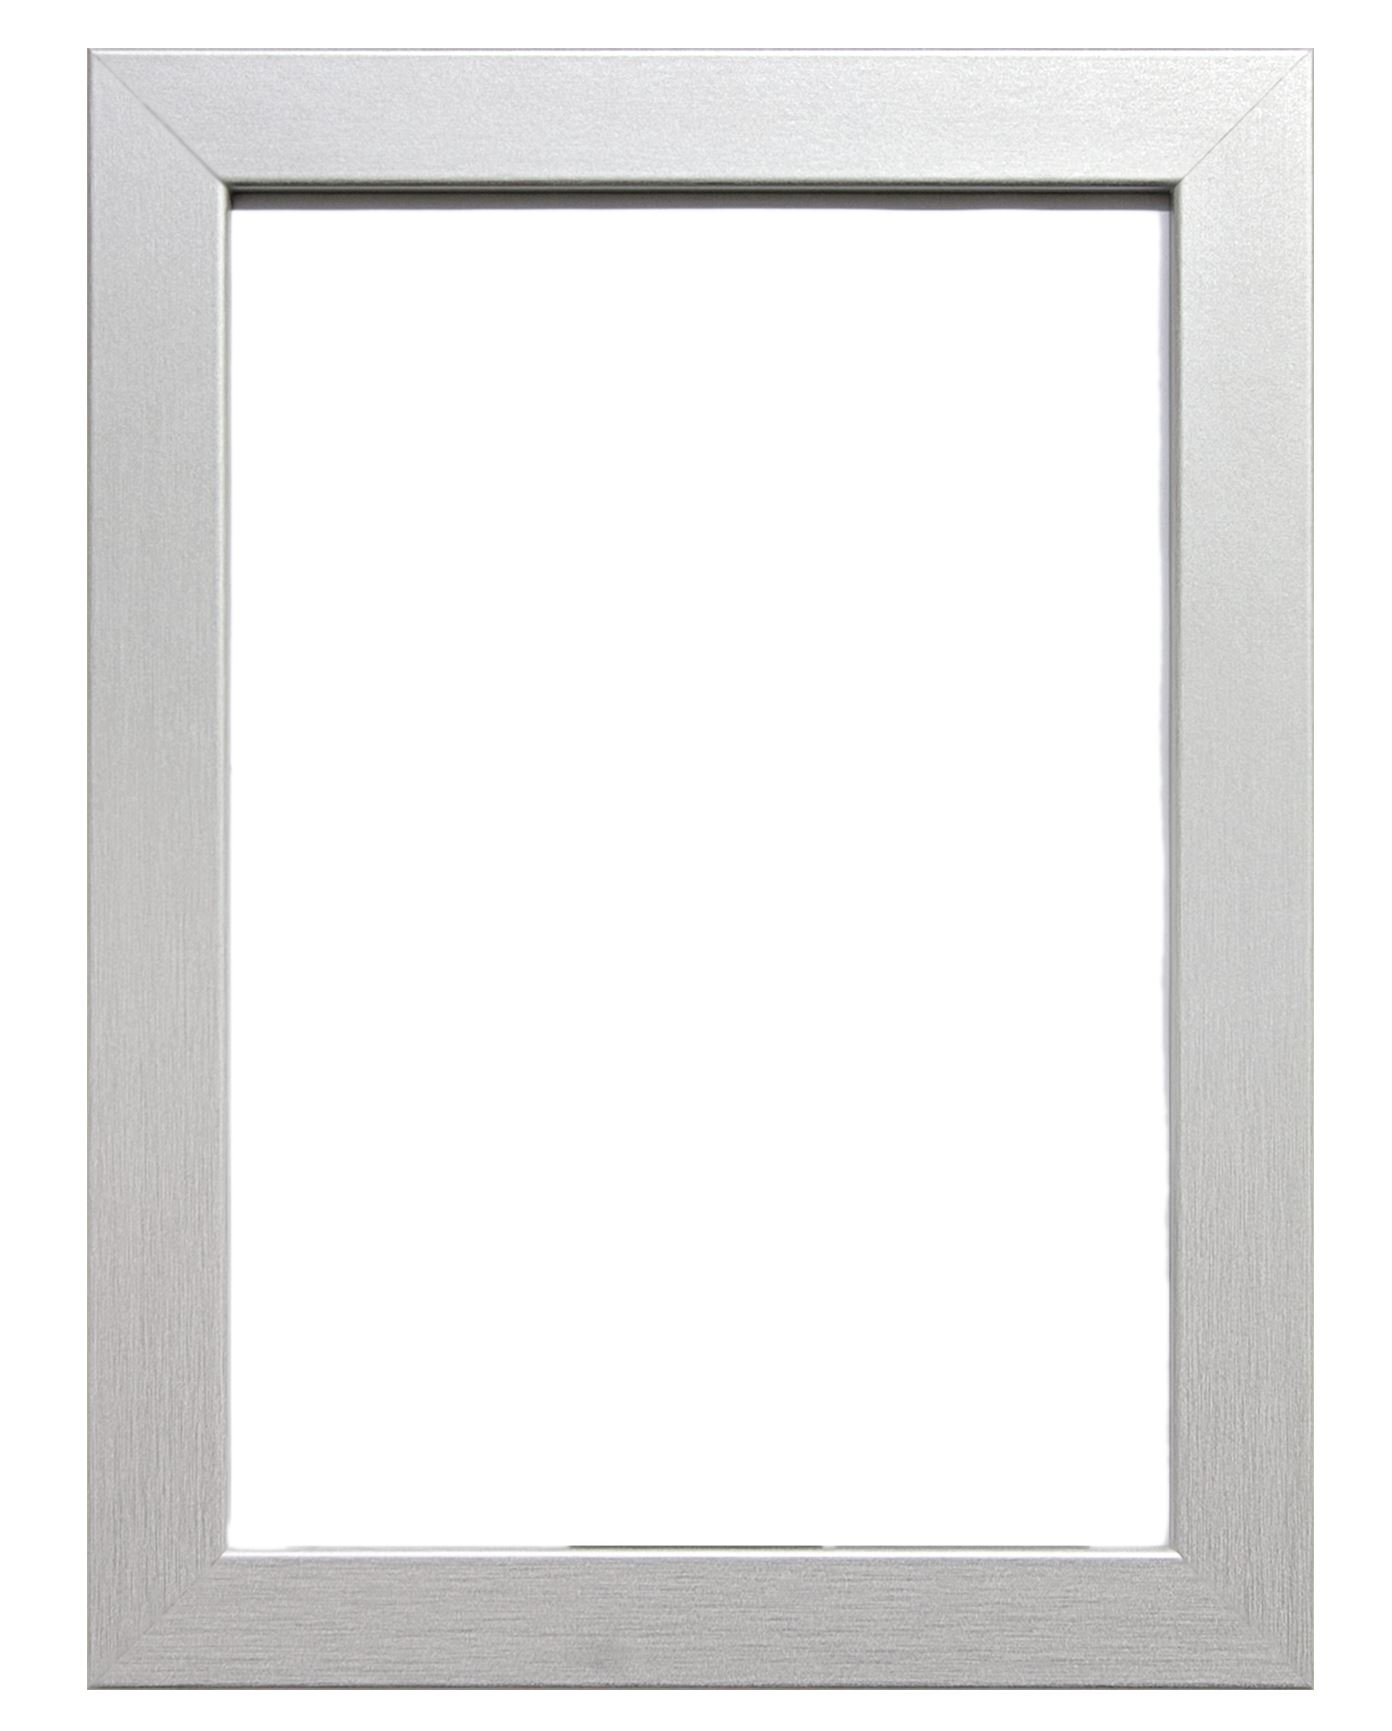 PEWTER CHROME SILVER PICTURE PHOTO POSTER FRAME METALLIC EFFECT ALL ...